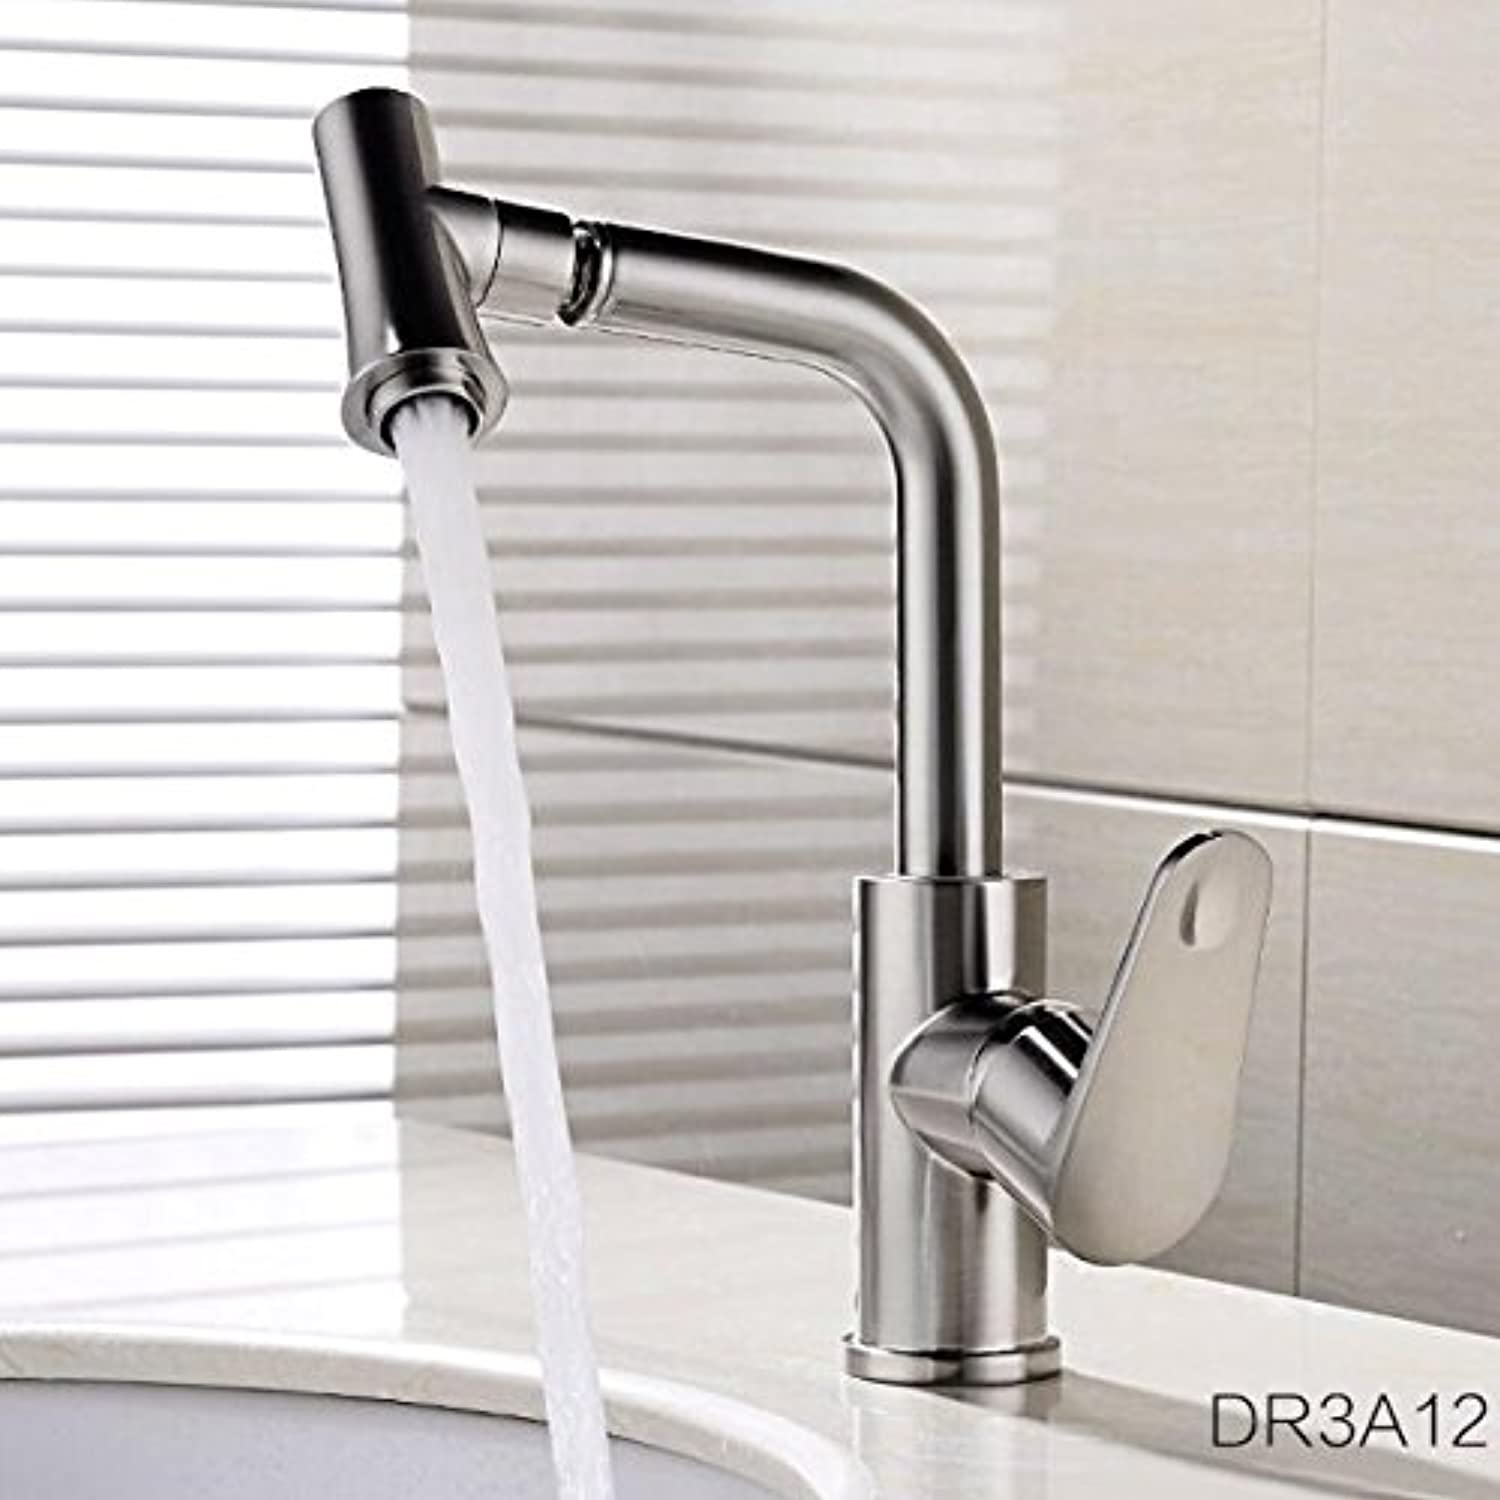 Retro Deluxe Faucetinging High Quality New Arrival Kitchen Faucet Chrome Brass hot and Cold Water tap Sink Mixer tap wash Basin Faucet Basin Mixer,Nickel